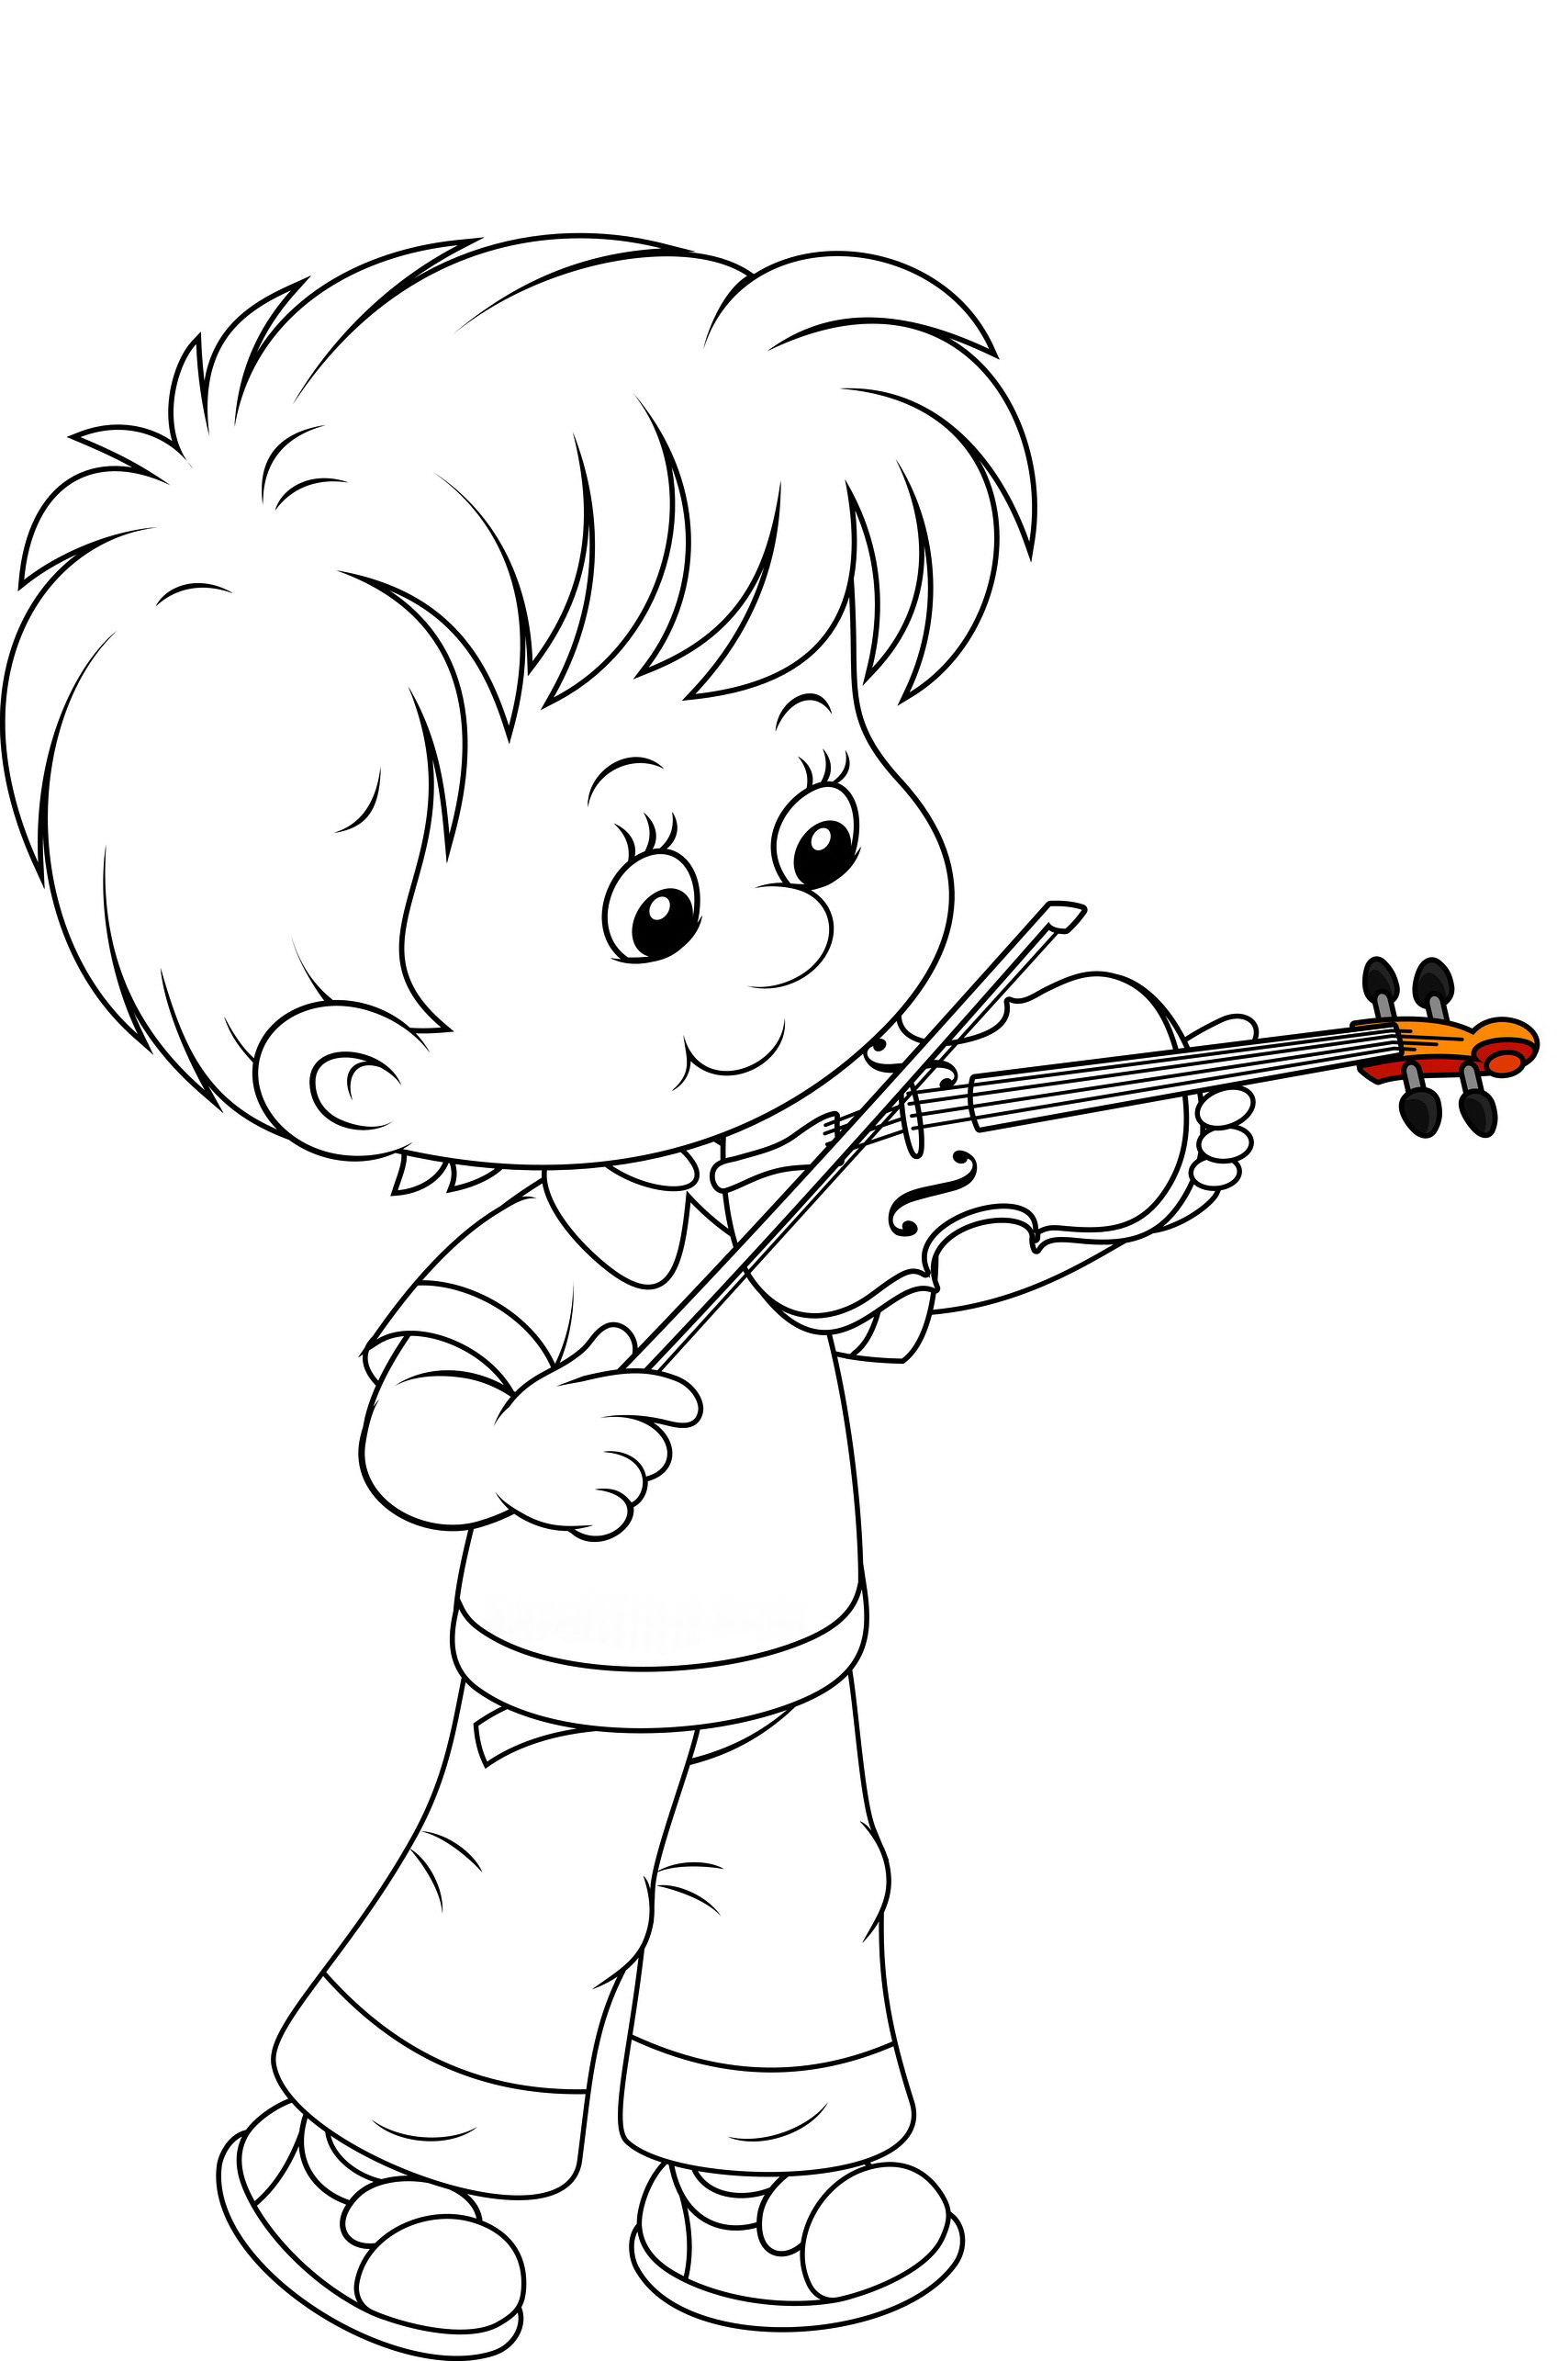 coloring sheets for boys boy coloring pages to download and print for free boys sheets coloring for